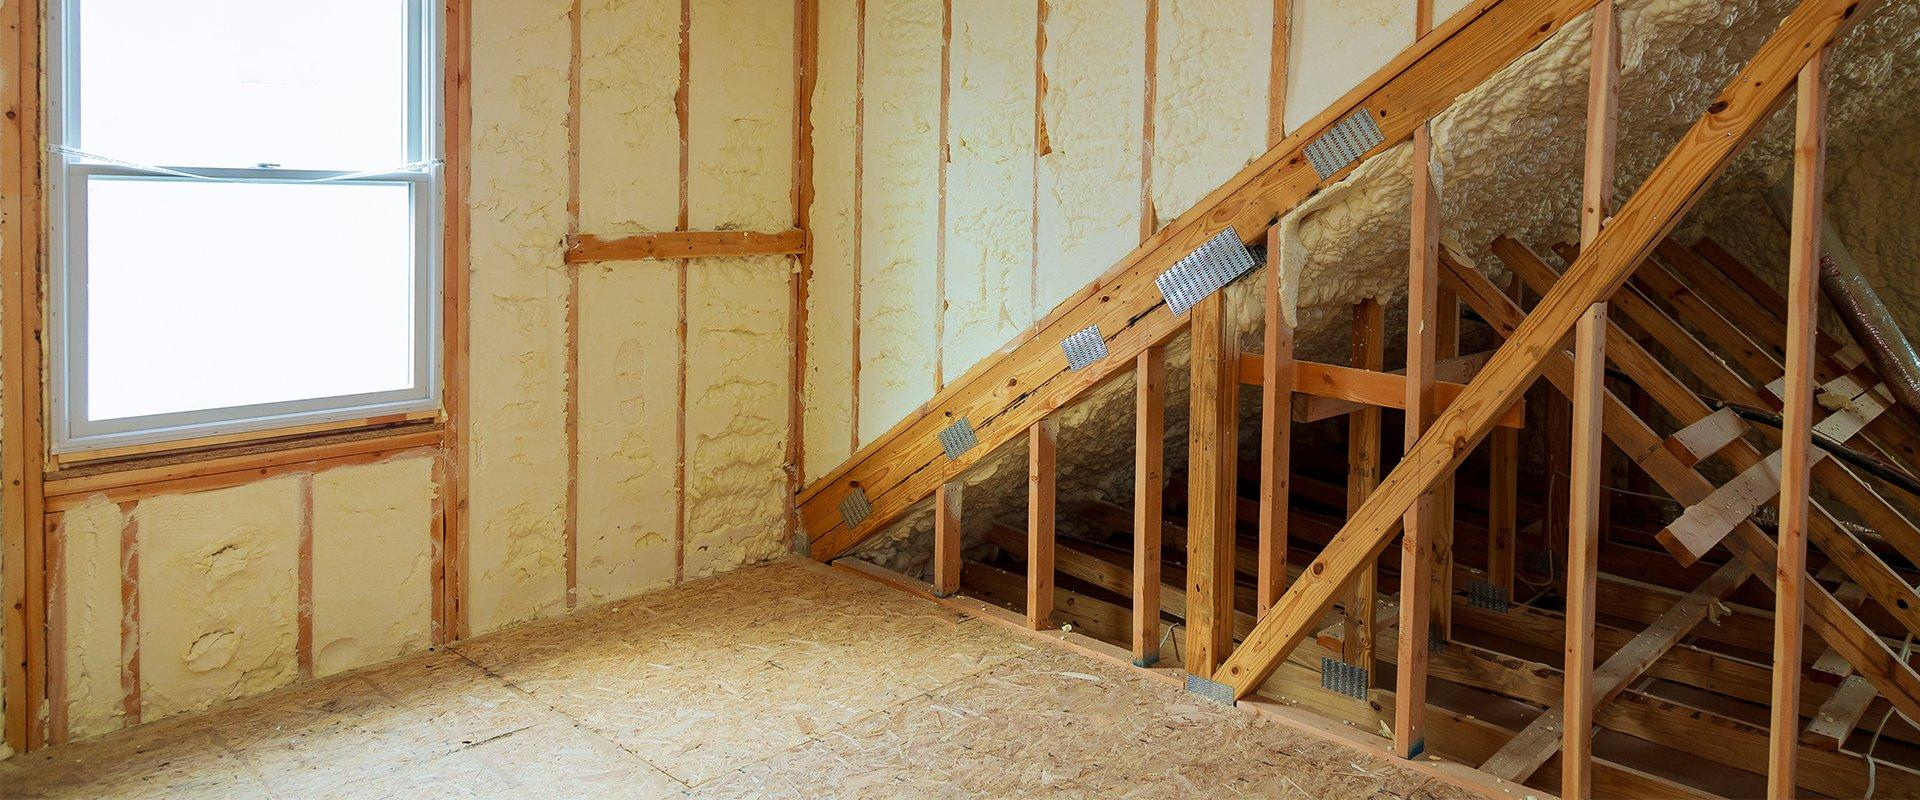 spray foam insulation in a washington state home